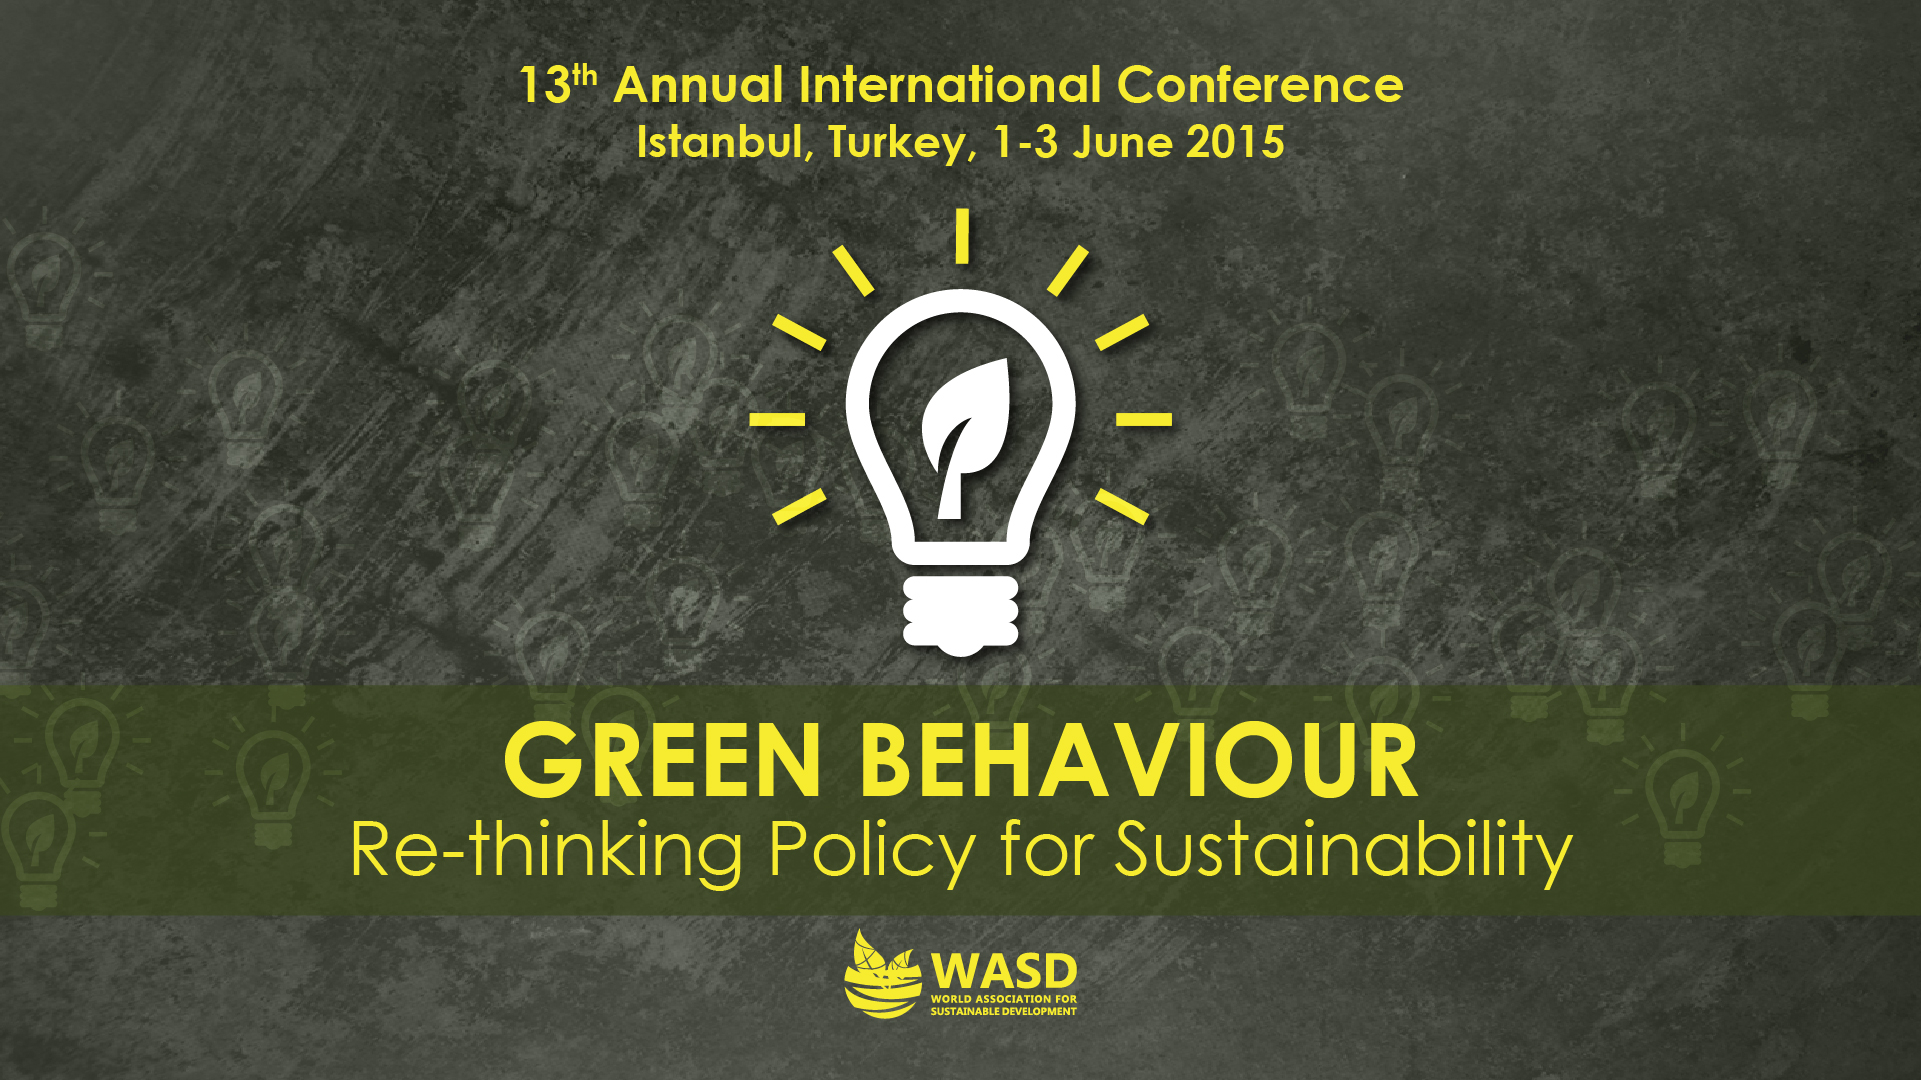 13th Sustainability Conference, Istanbul, Turkey 2015<div style='clear:both;width:100%;height:0px;'></div><span class='cat'>Sustainability Conferences, MENA</span>